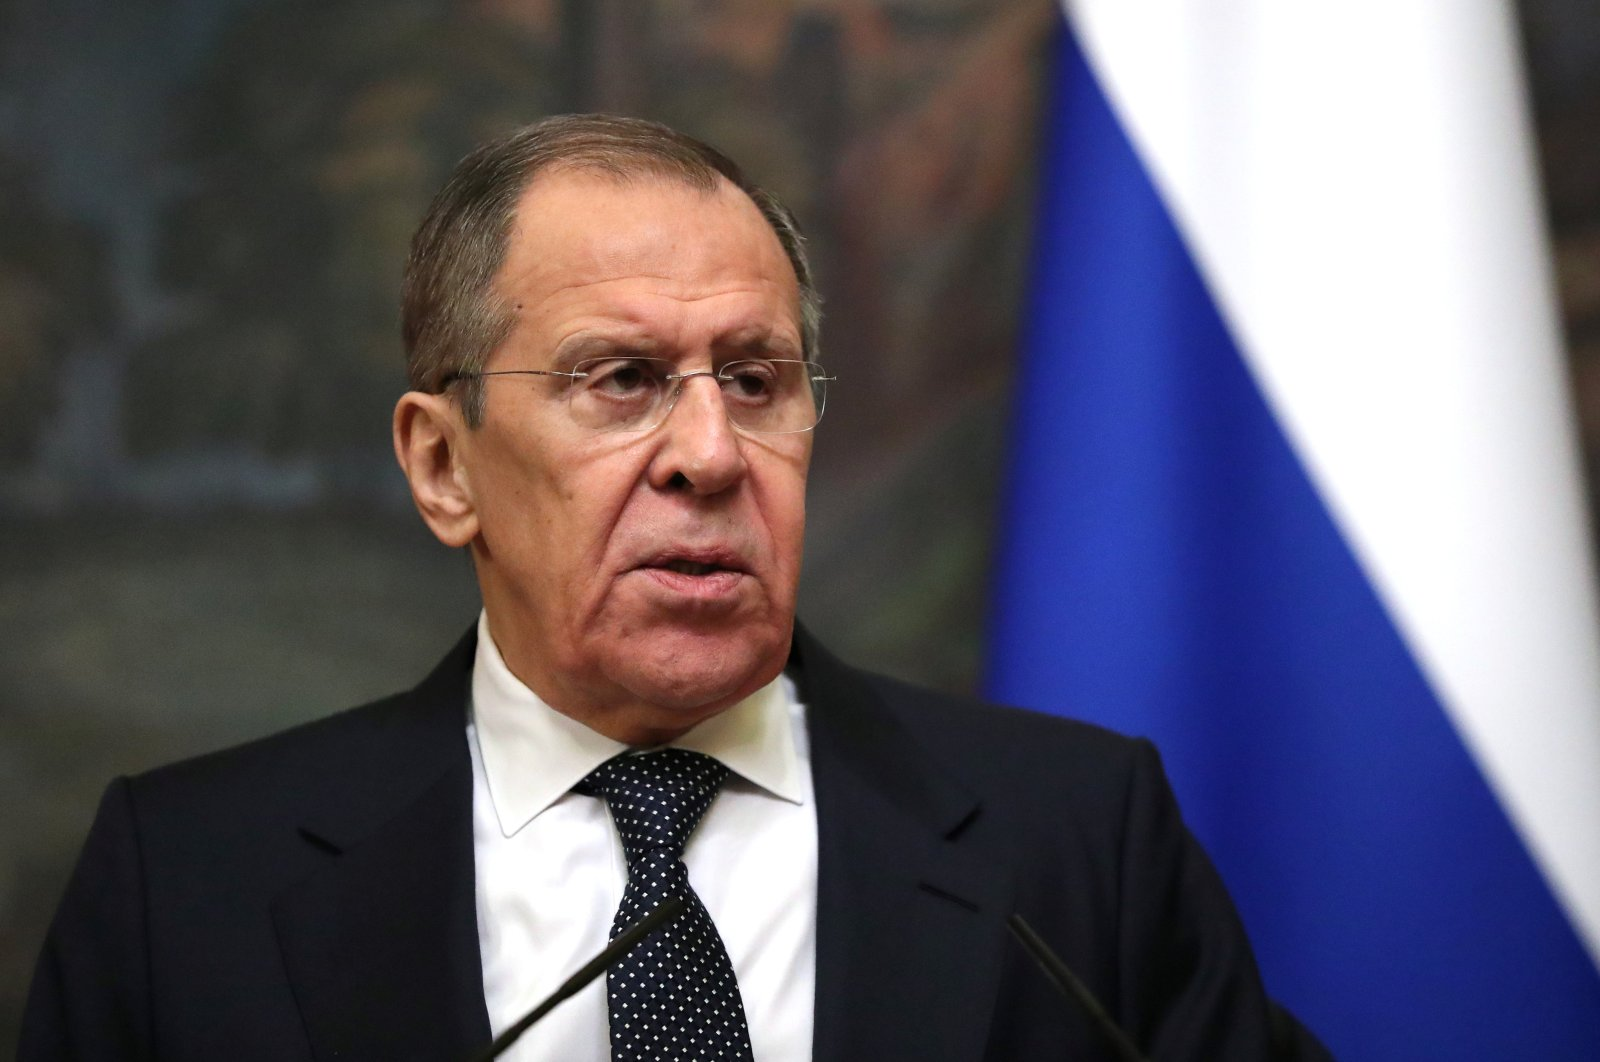 Russian Foreign Minister Sergei Lavrov attends a news conference with his Jordanian counterpart Ayman Safadi following their talks in Moscow, Russia February 19, 2020. (Reuters Photo)